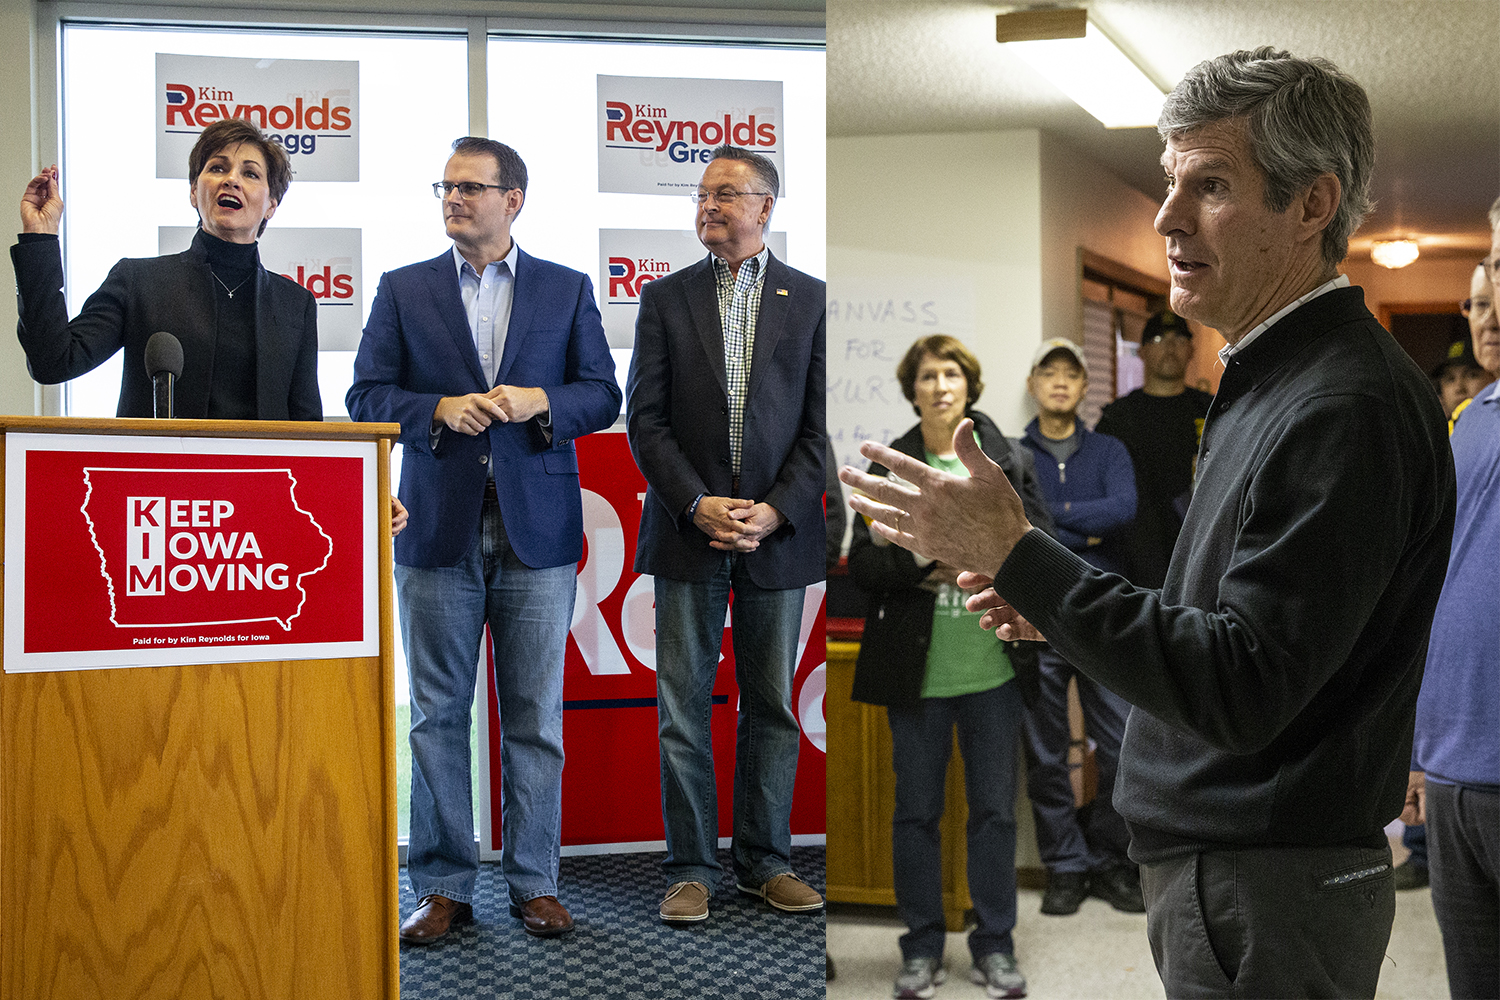 LEFT: Gov. Kim Reynolds speaks during a rally at the Eastern Iowa Airport in Cedar Rapids on Nov. 5 as Lt. Gov. Adam Gregg and Rep. Rod Blum, R-Iowa look on.  RIGHT: Democratic candidate for governor Fred Hubbell speaks to supporters at the home of Janice Weiner on Nov. 5.